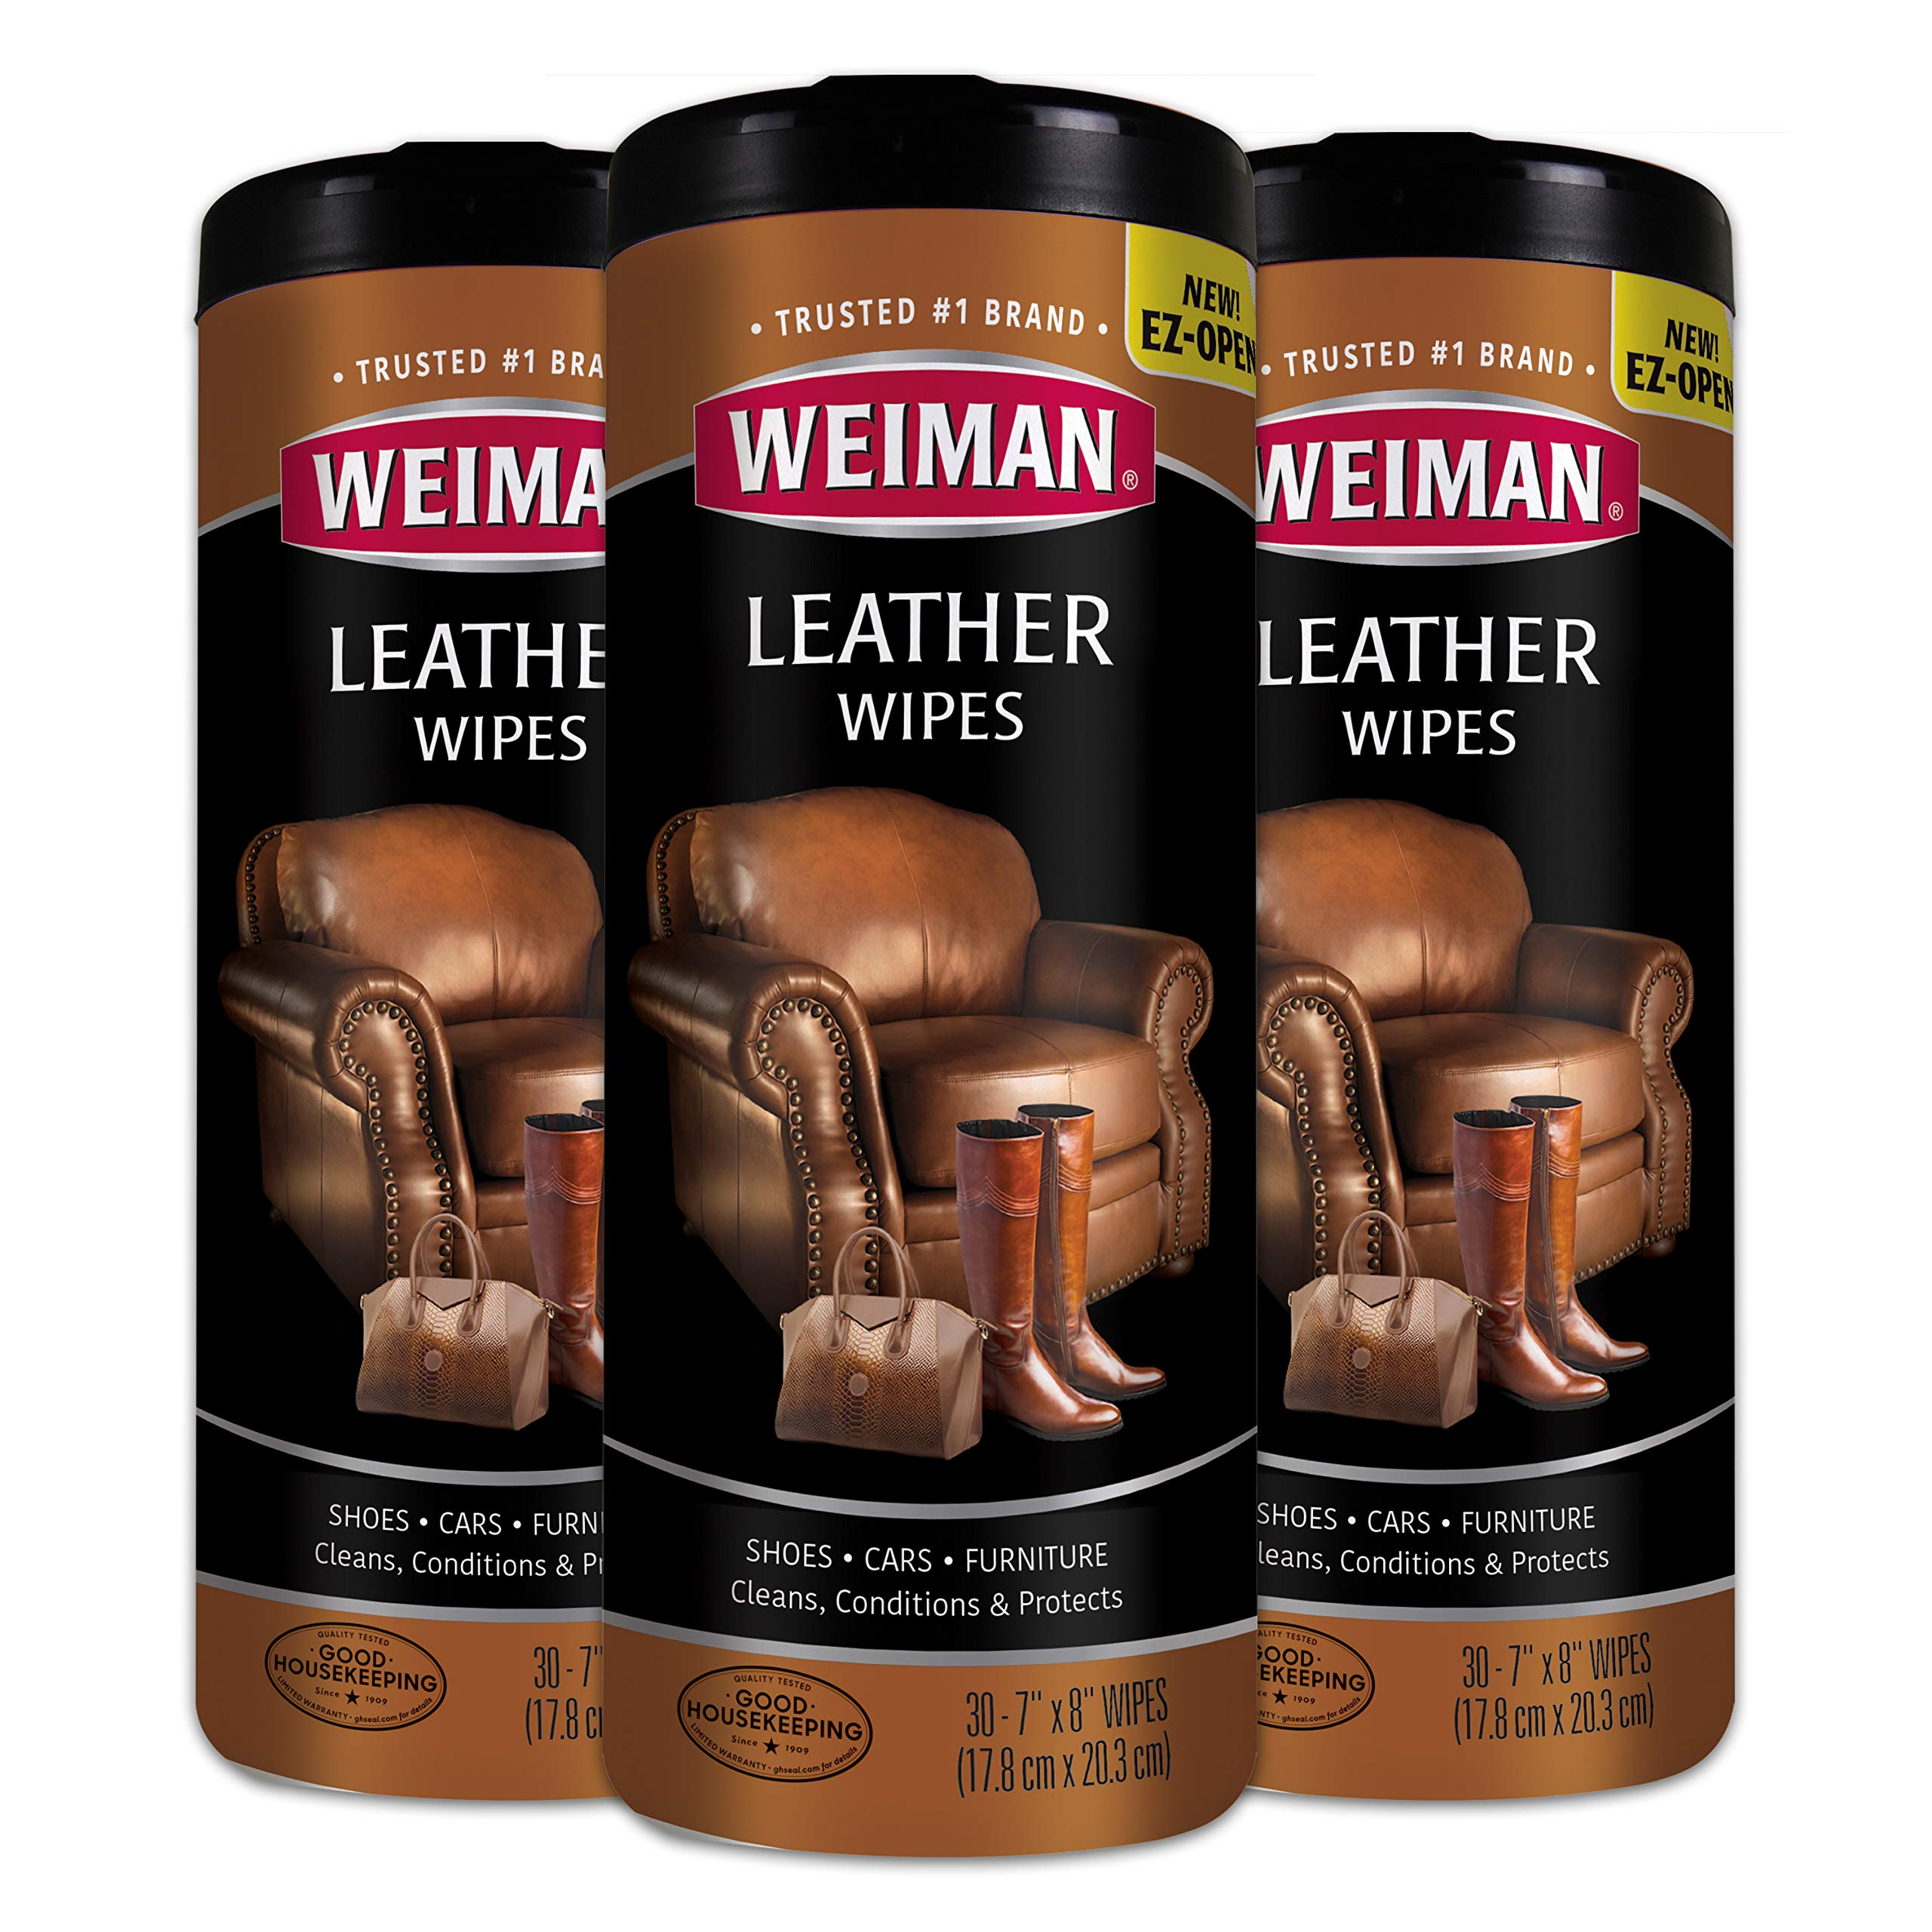 Weiman Leather Wipes - 3 Pack - Clean, Condition, Ultra Violet Protection Help Prevent Cracking or Fading of Leather Furniture, Car Seats and Interior, Shoes by Weiman